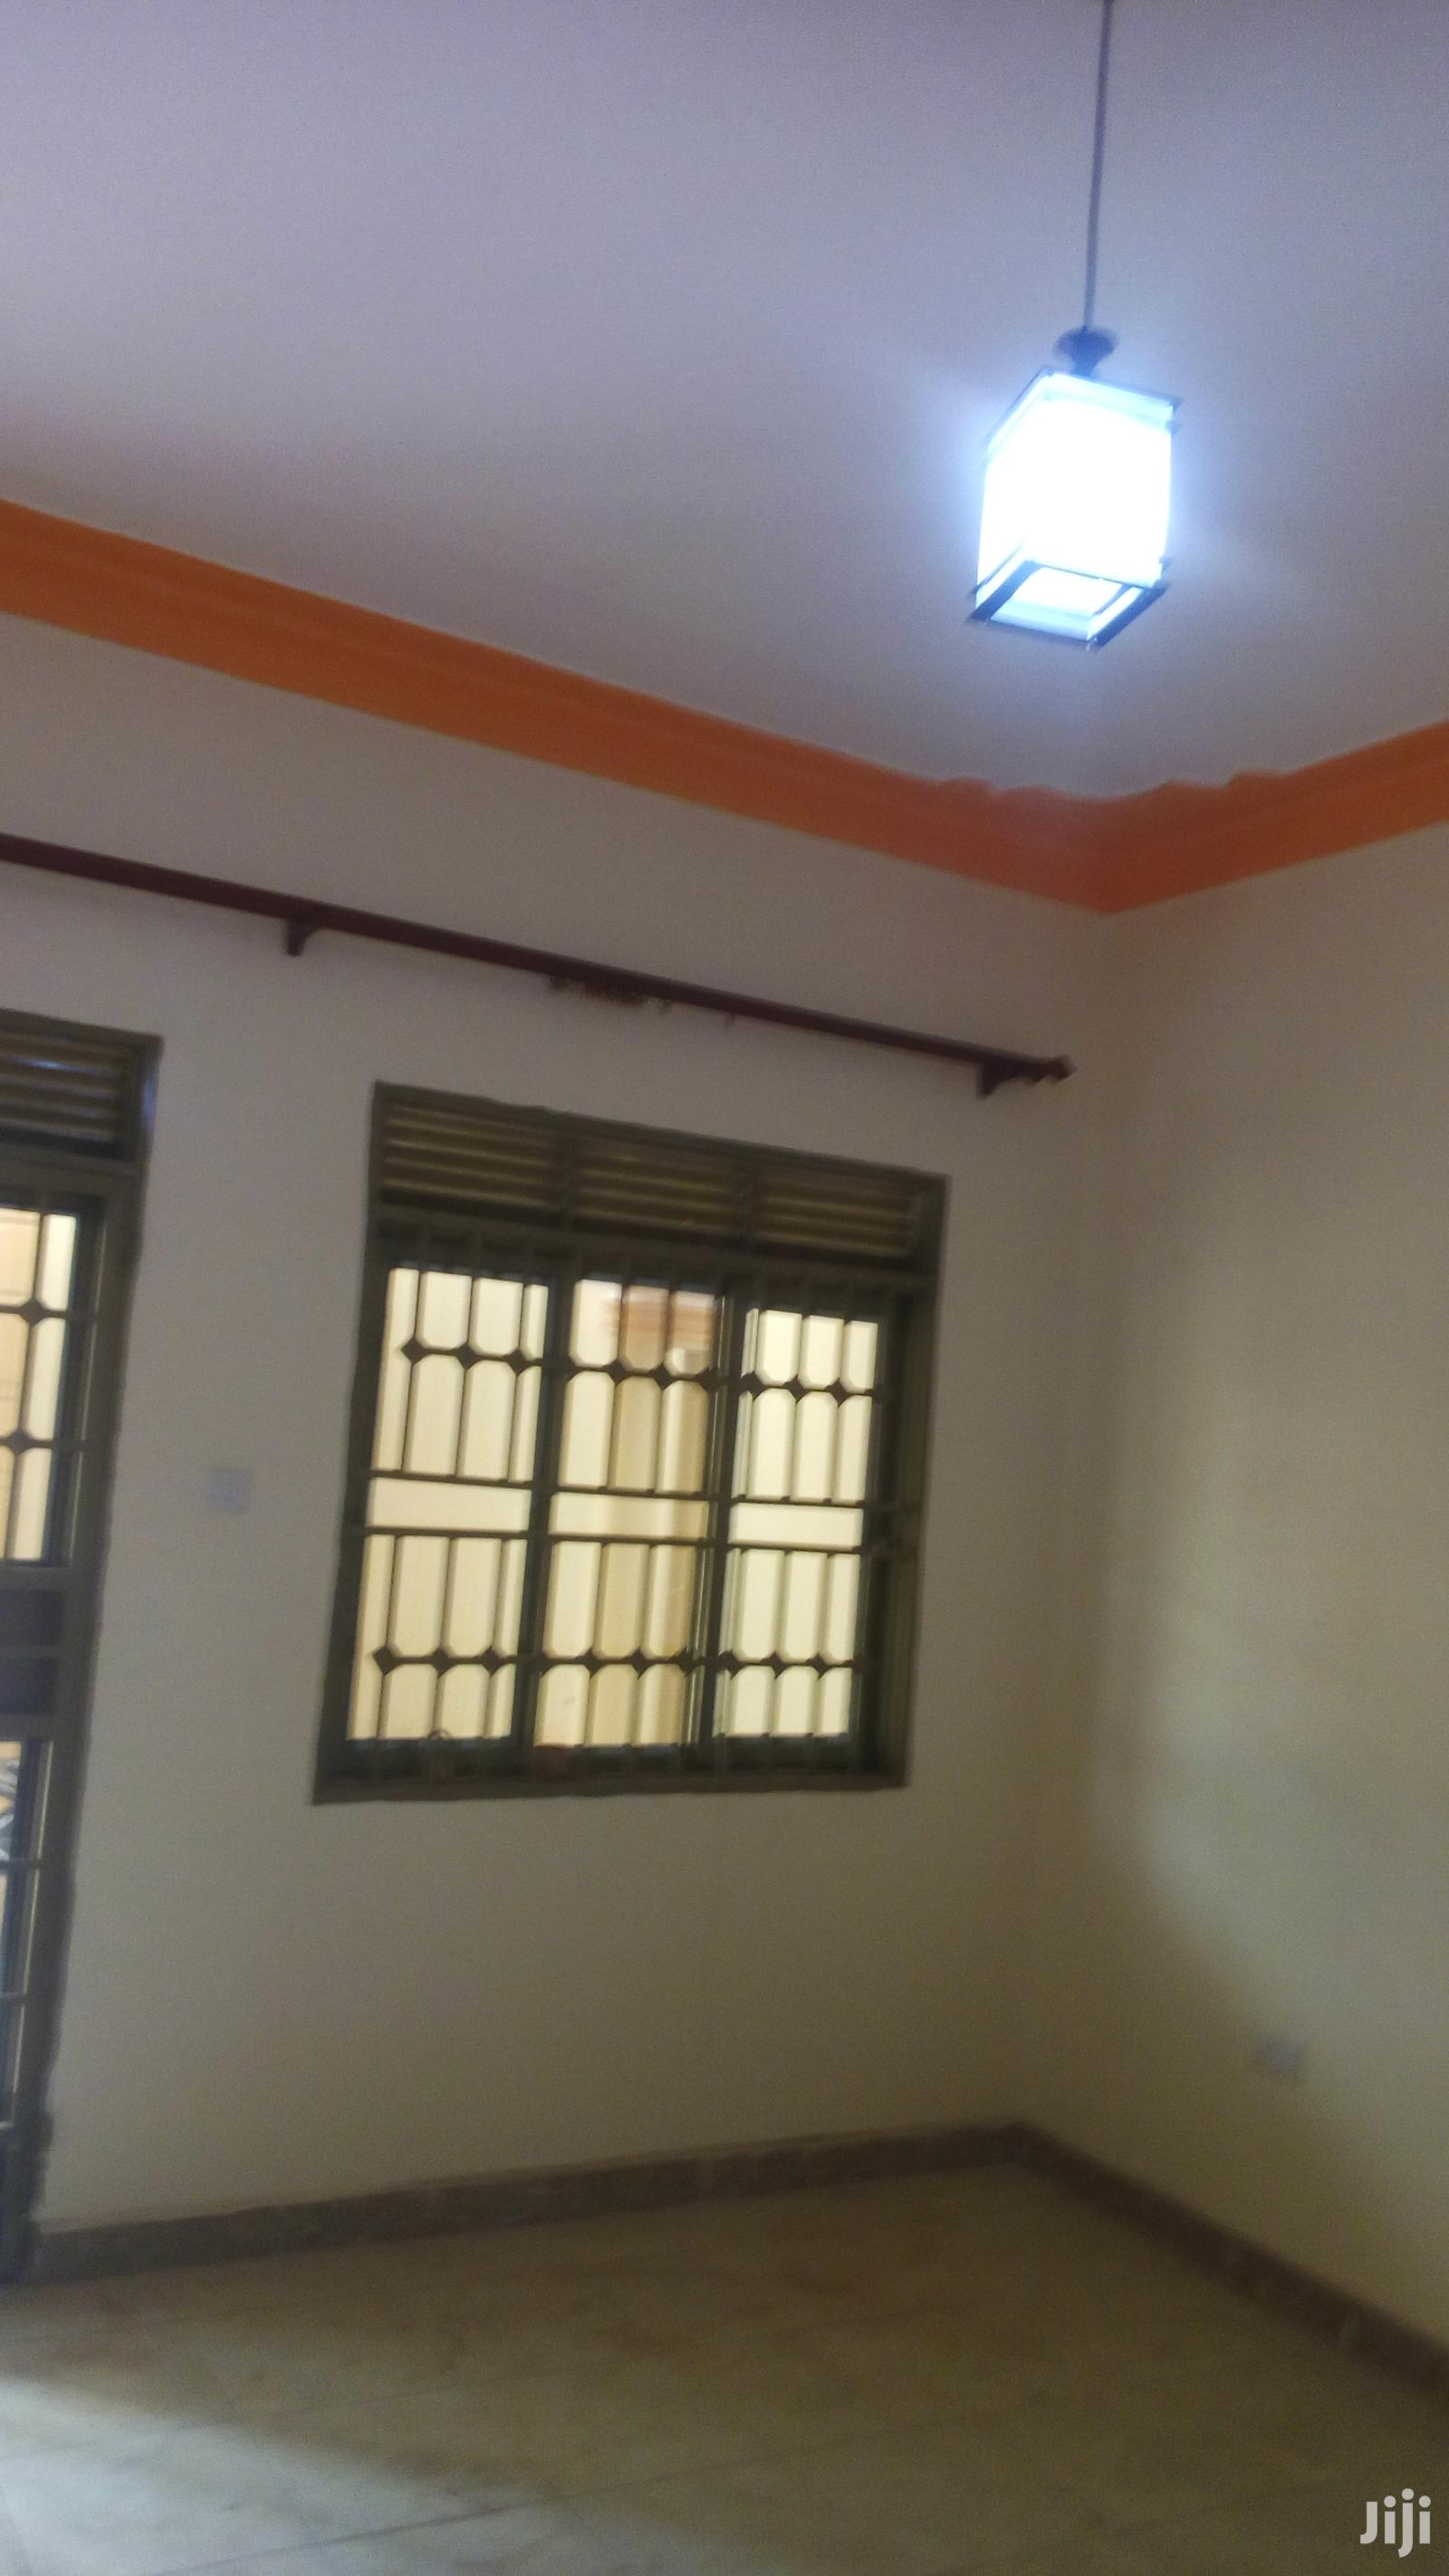 Classic 2bedroom House For Rent In Mpererewe Self Contained | Houses & Apartments For Rent for sale in Kampala, Central Region, Uganda